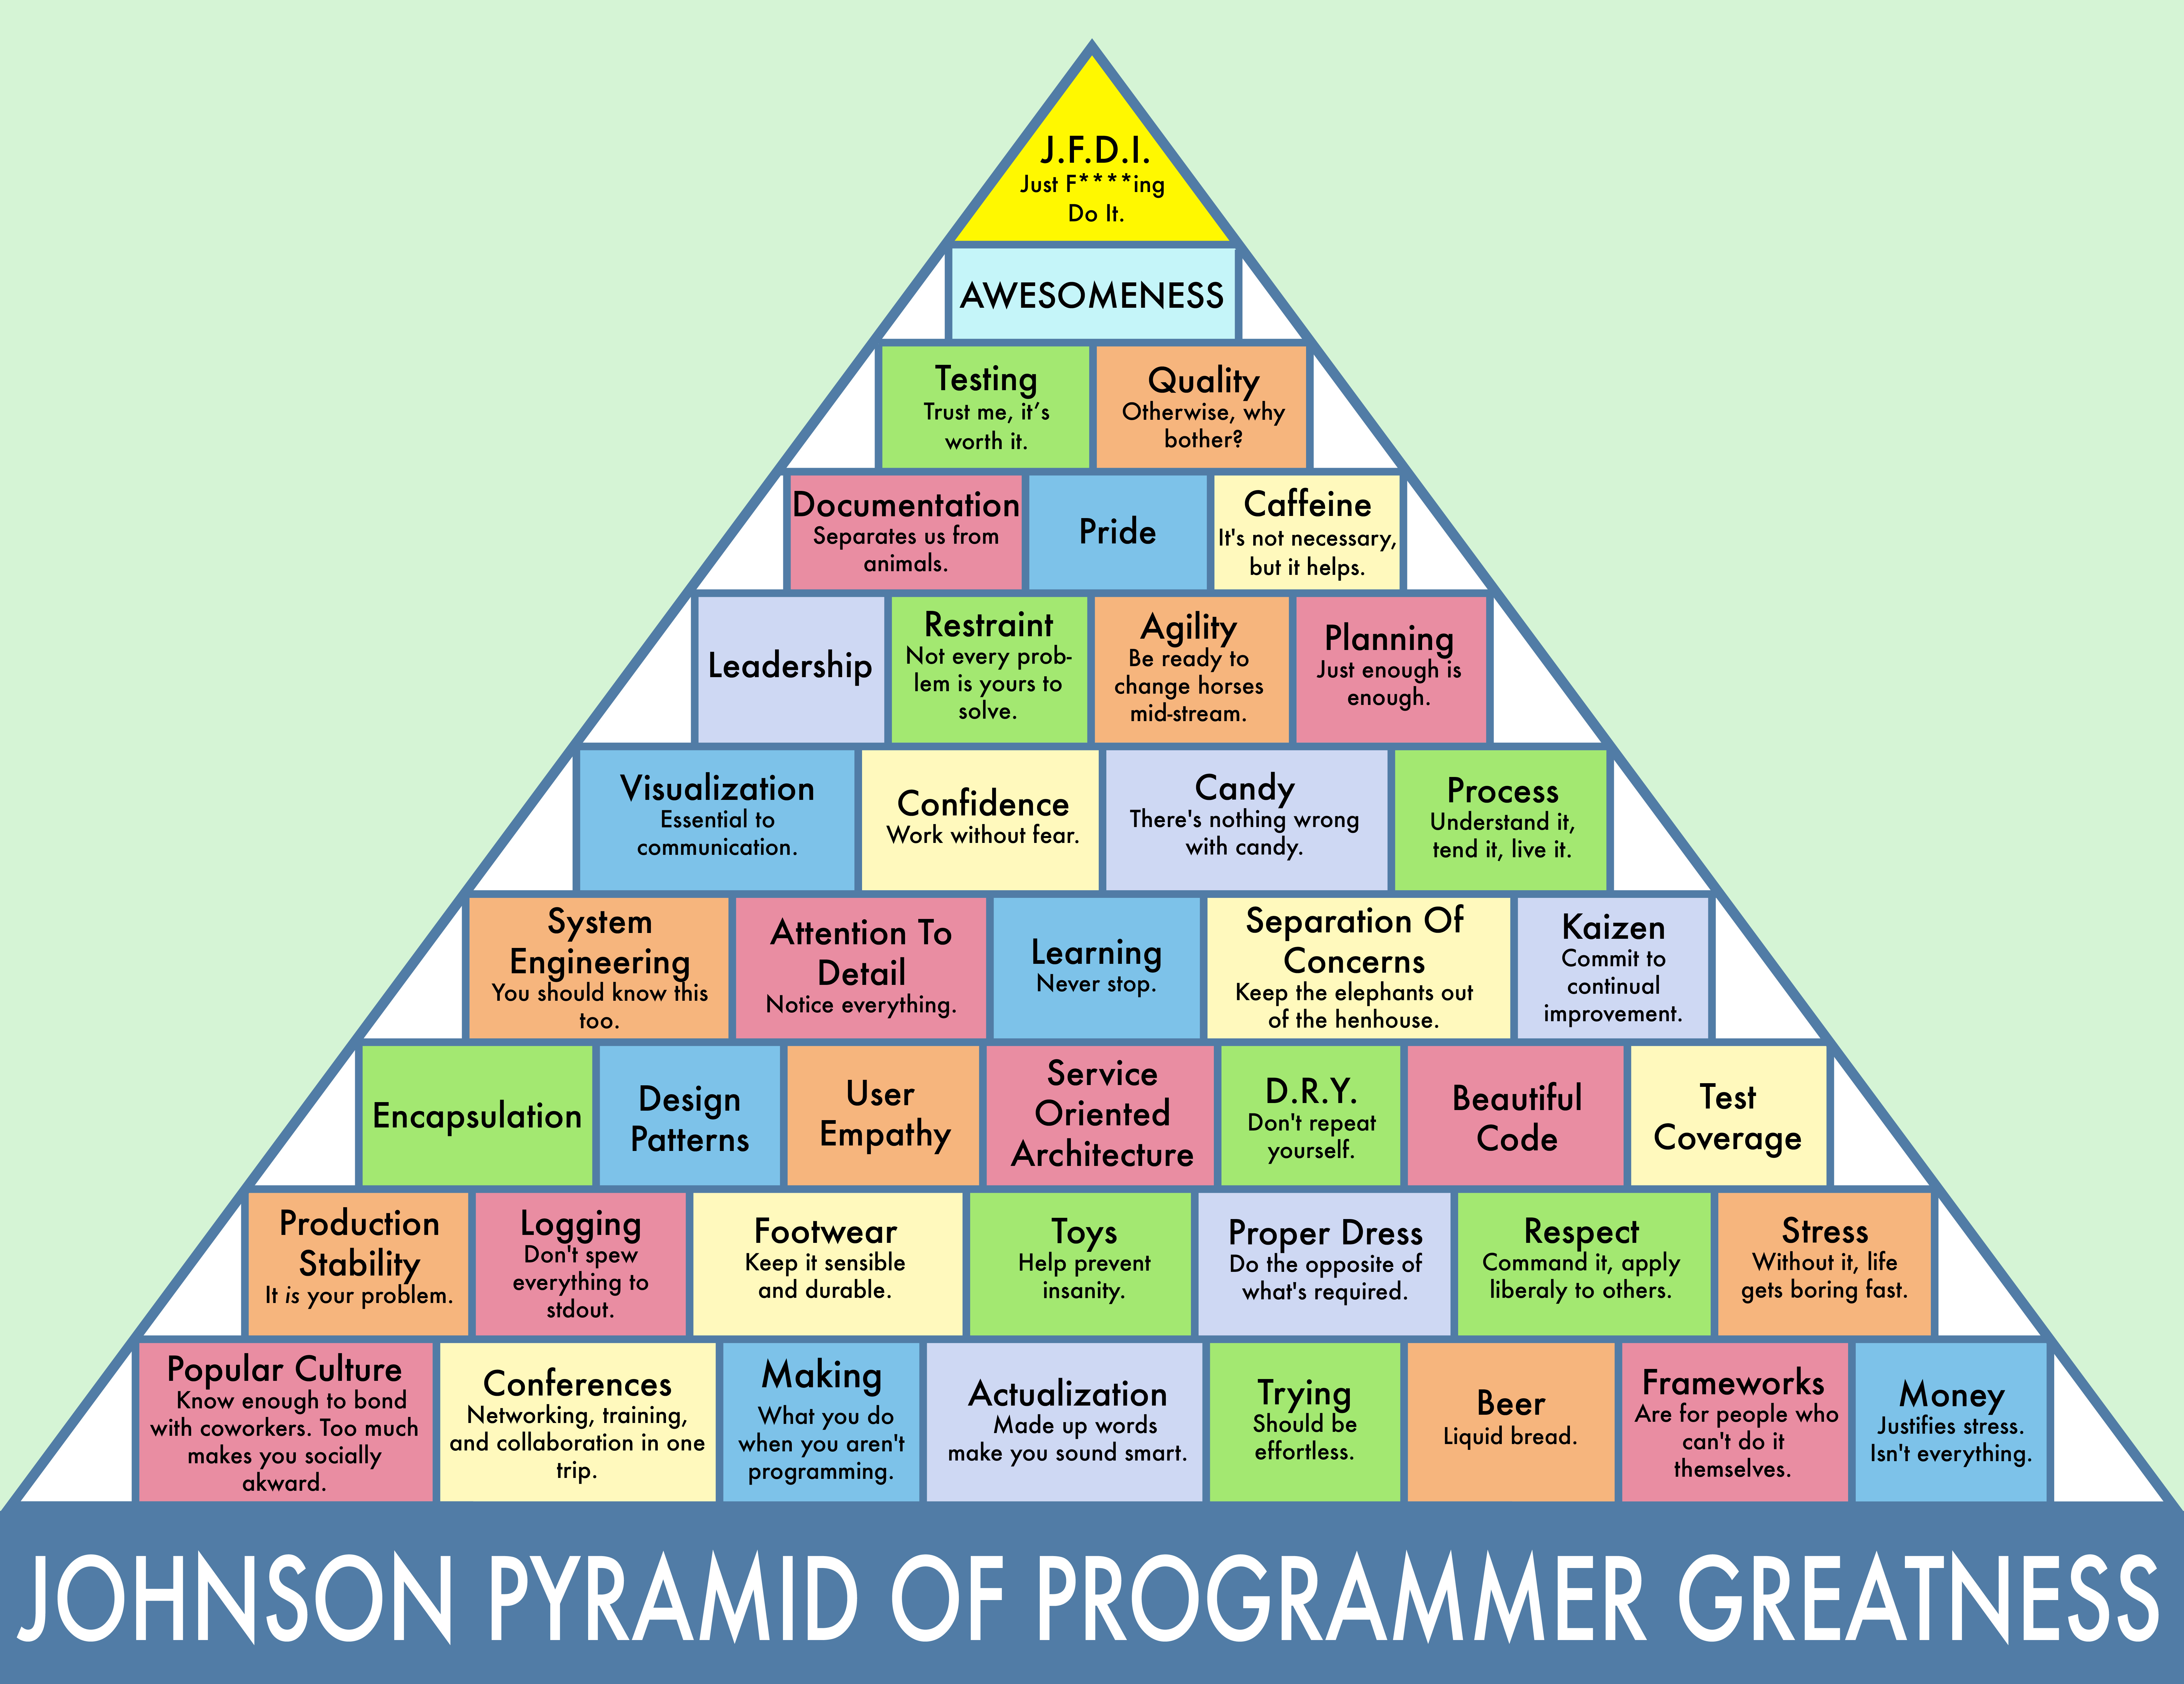 image relating to Ron Swanson Pyramid of Greatness Printable Version identified as The Johnson Pyramid Of Programmer Greatness - The Gathered